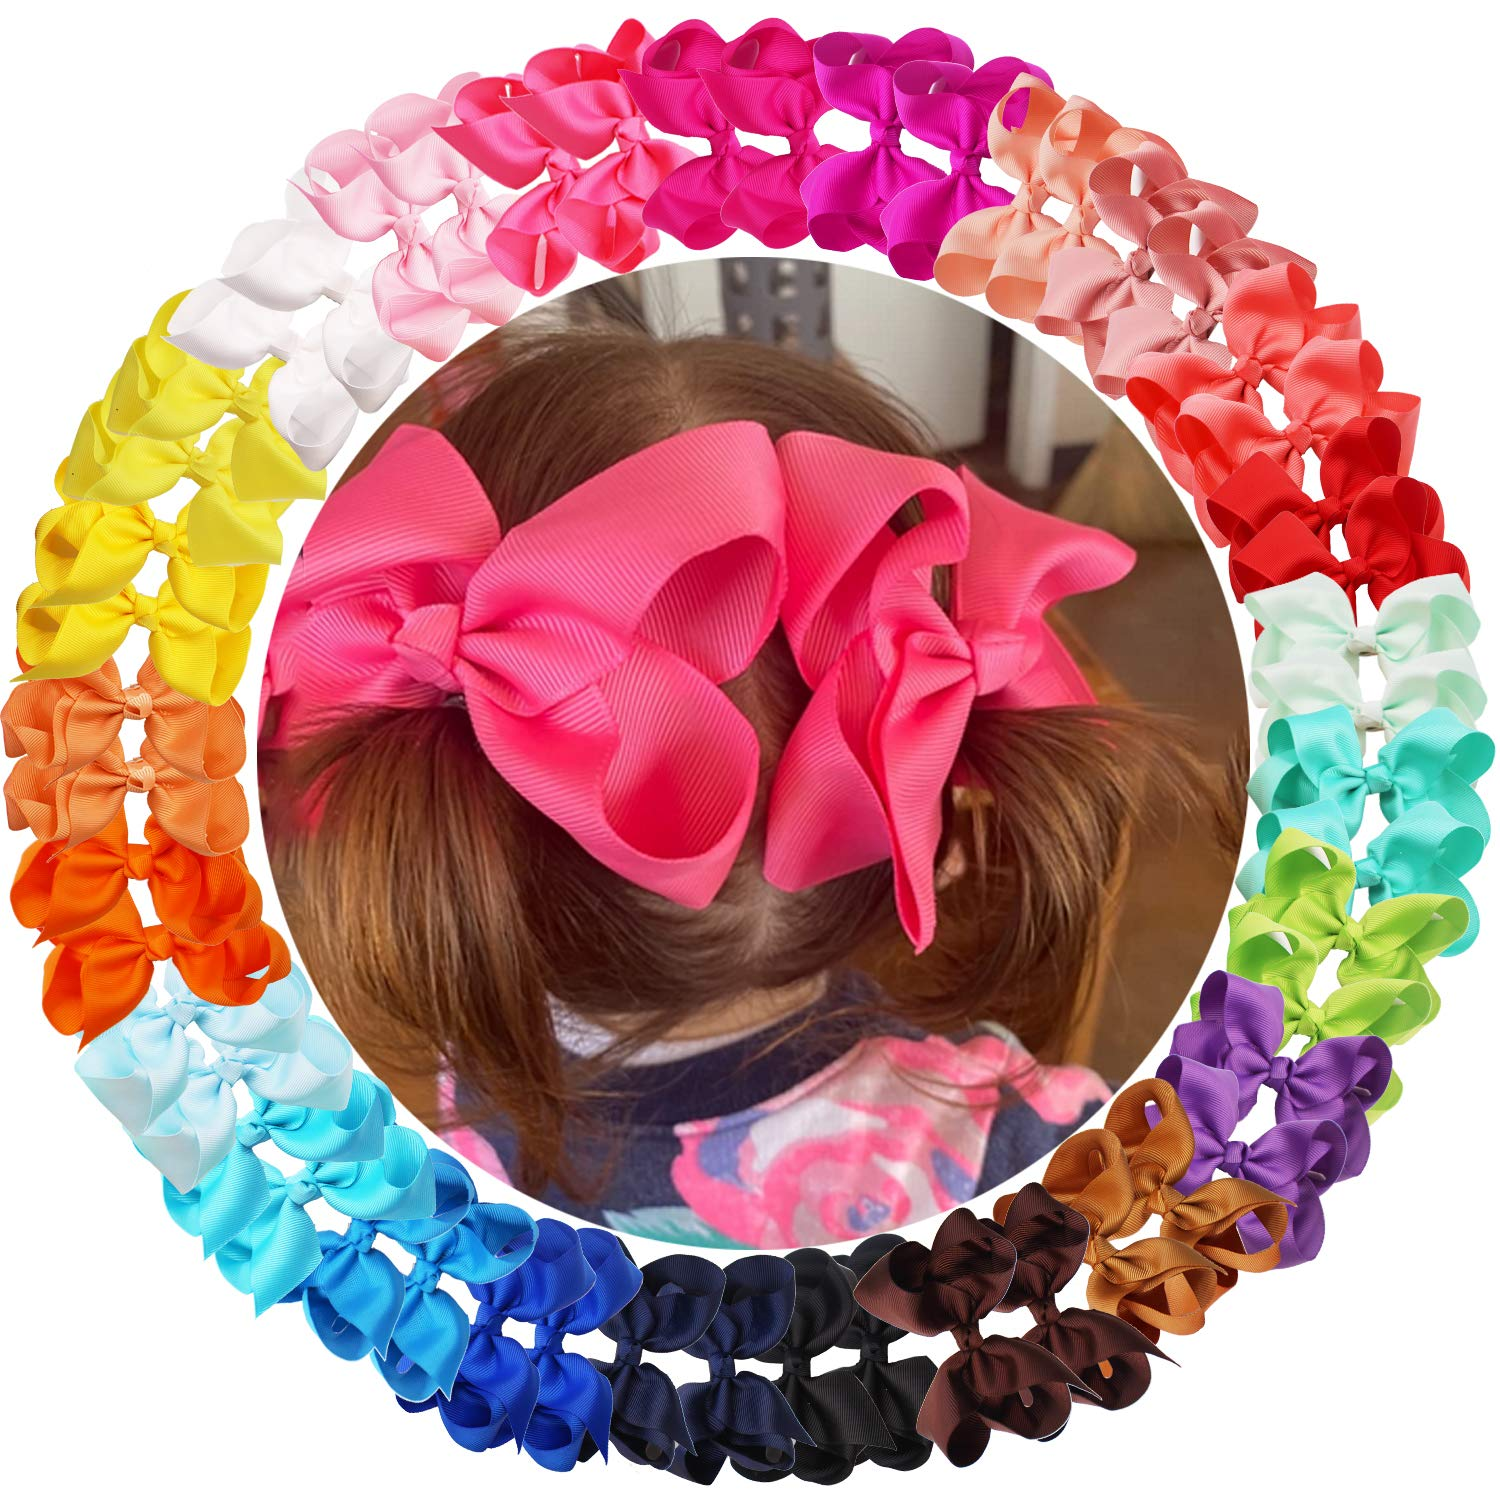 50PCS Baby Girls Hair Now on sale Clips 4.5Inch Bows Ribbon New Free Shipping Grosgrain A